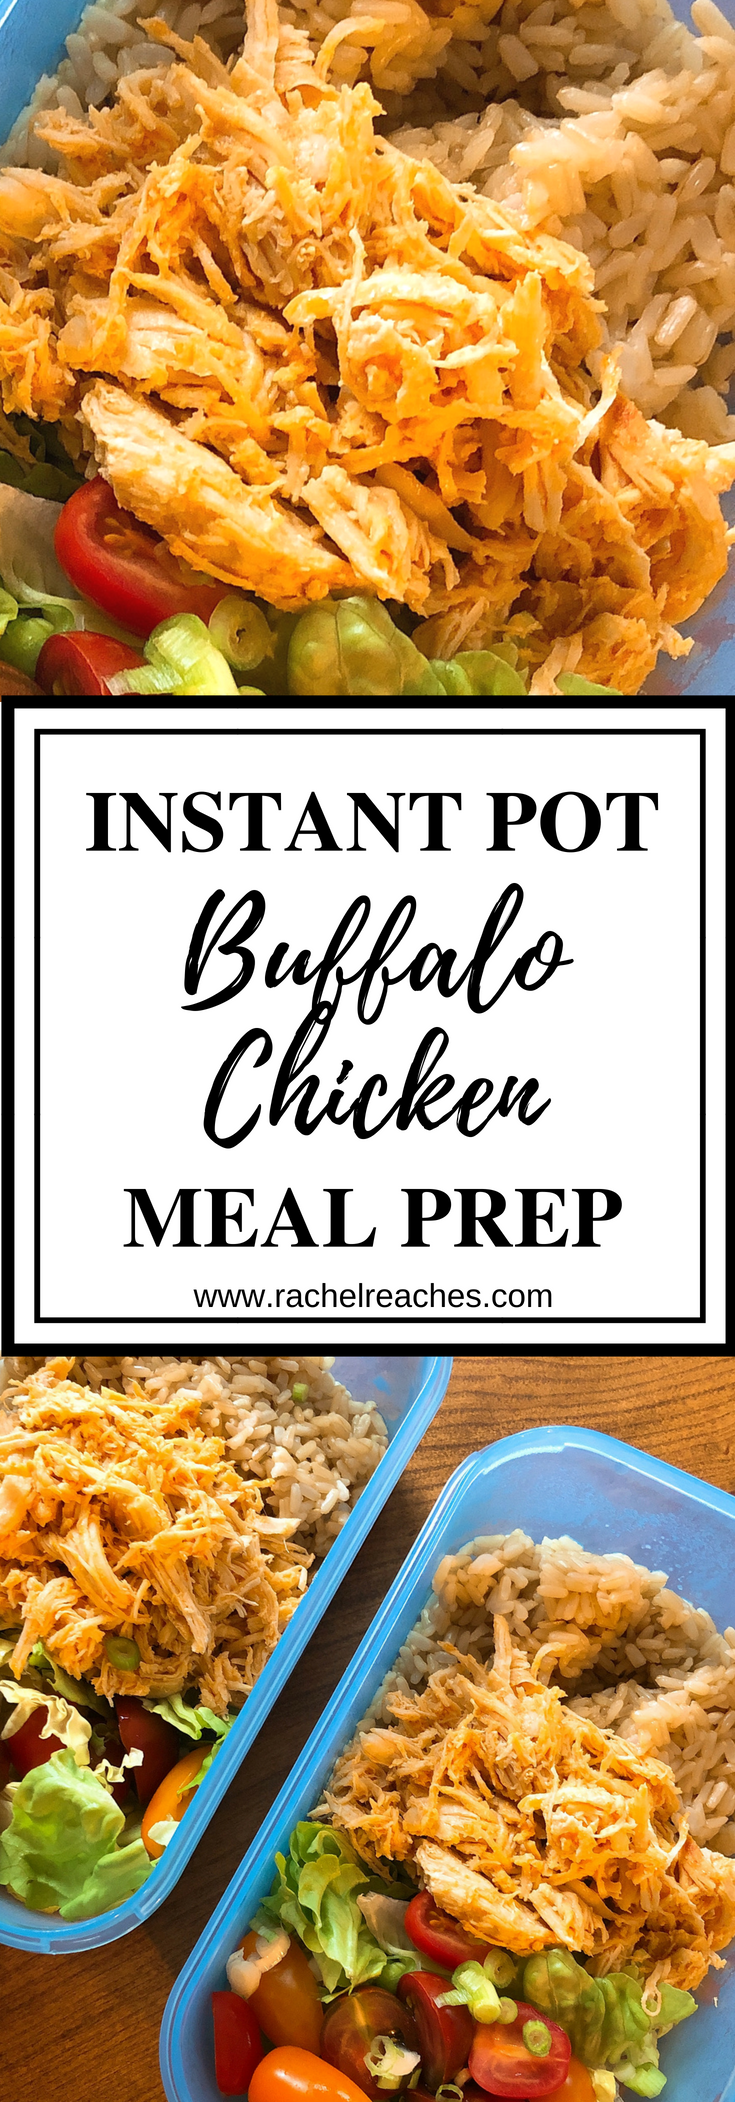 Buffalo Chicken Meal Prep Pin - Healthy Eating.png